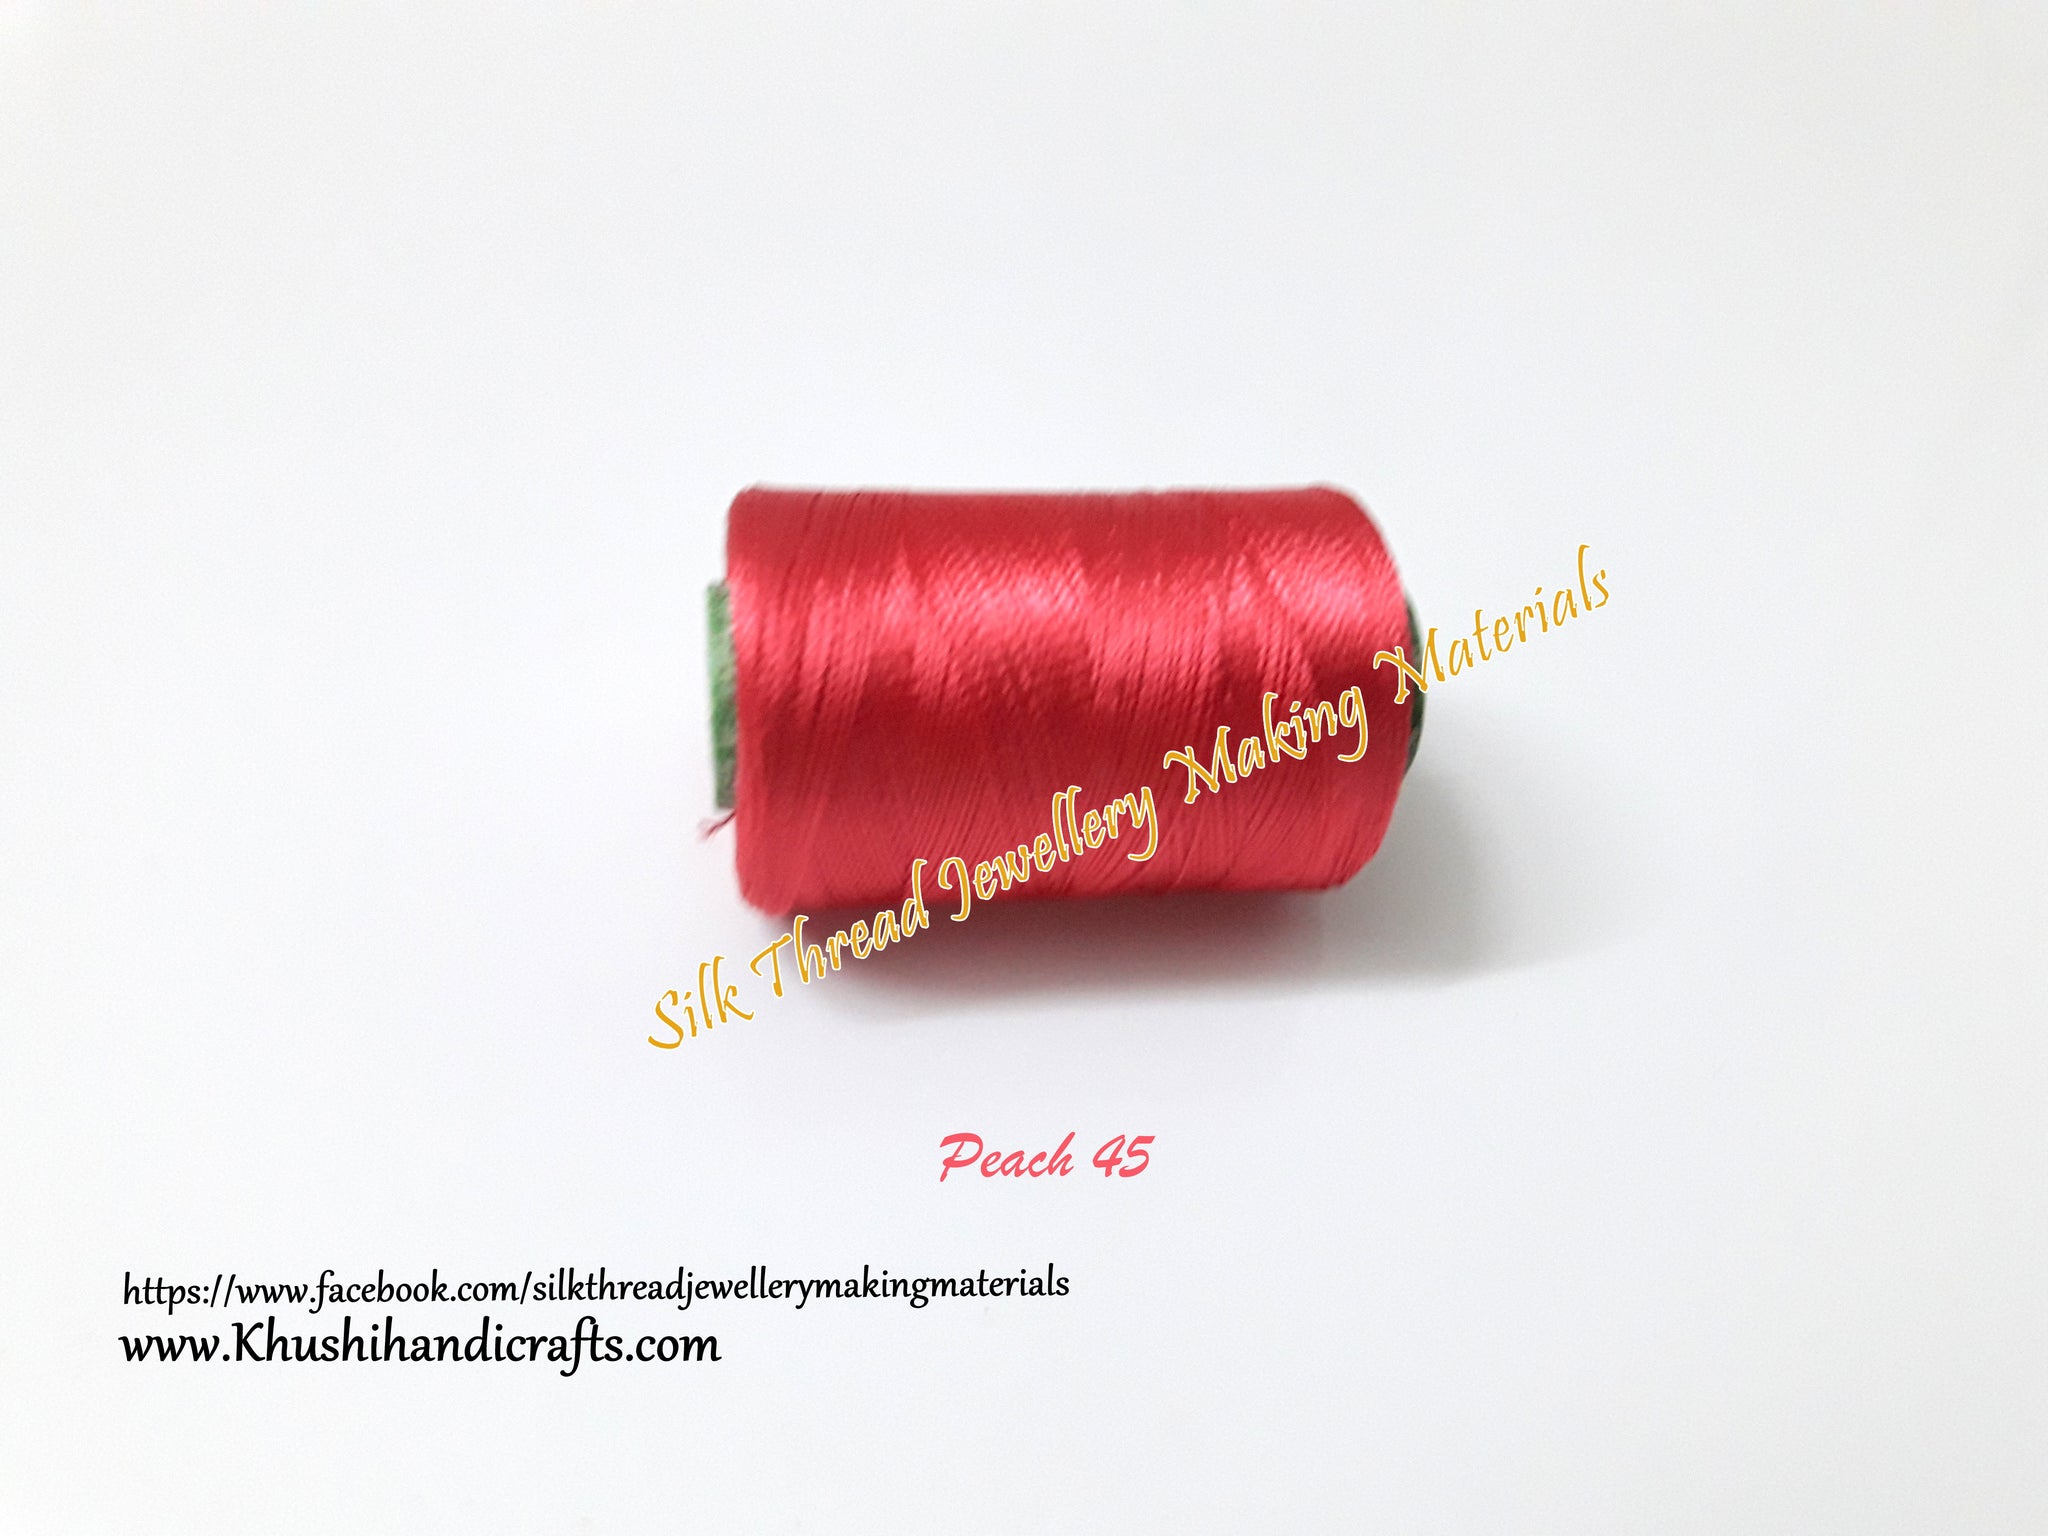 Dark Peach Silk Thread